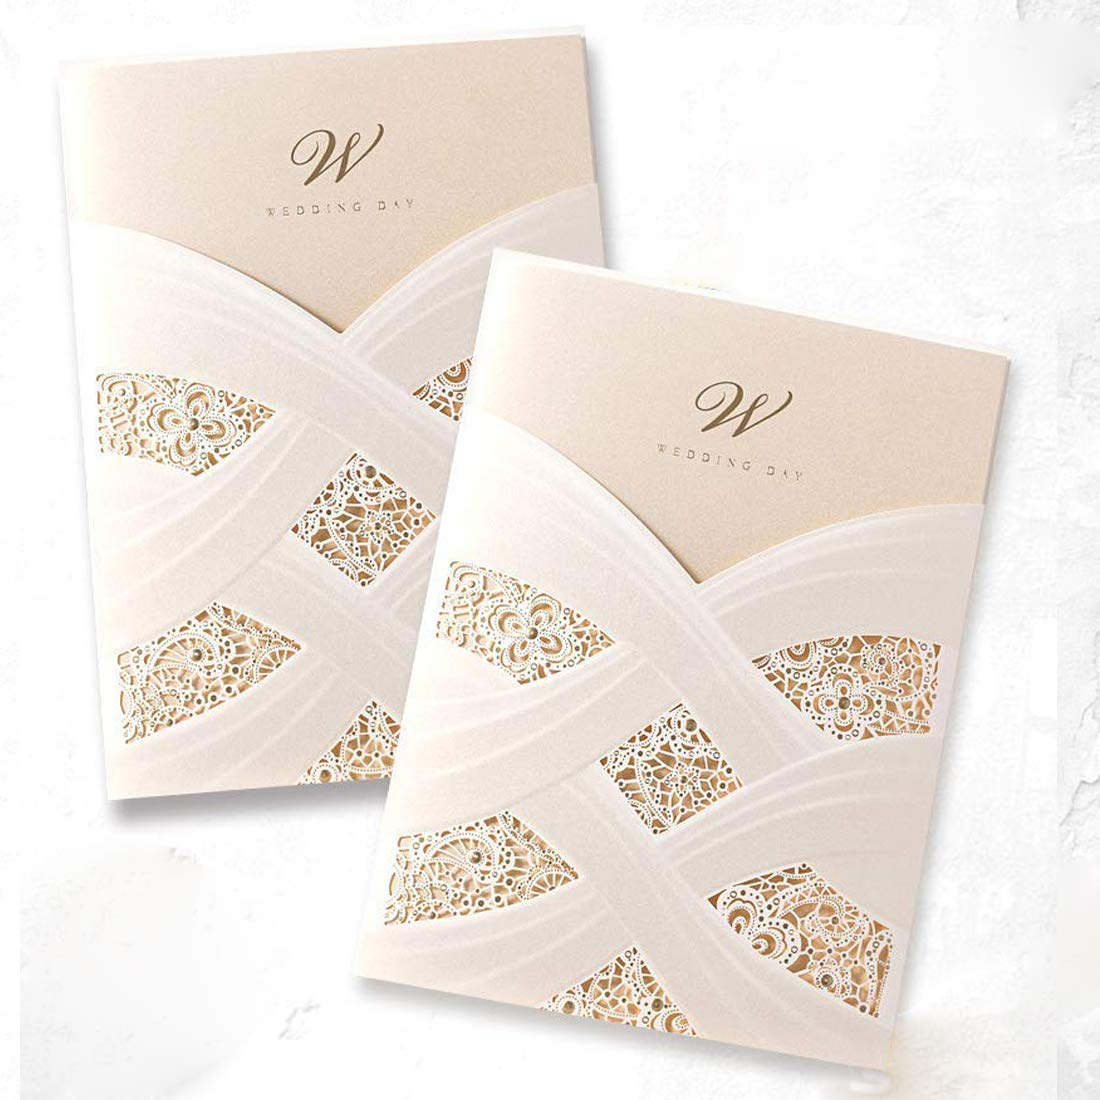 50 Pieces Wishmade Laser Cut Wedding Invitations Cards Kits Engagement Lace Style Vertical Ivory Pocket for Marriage Anniversary Cardstock with Envelope and Seal Bride Shower Packs Favors